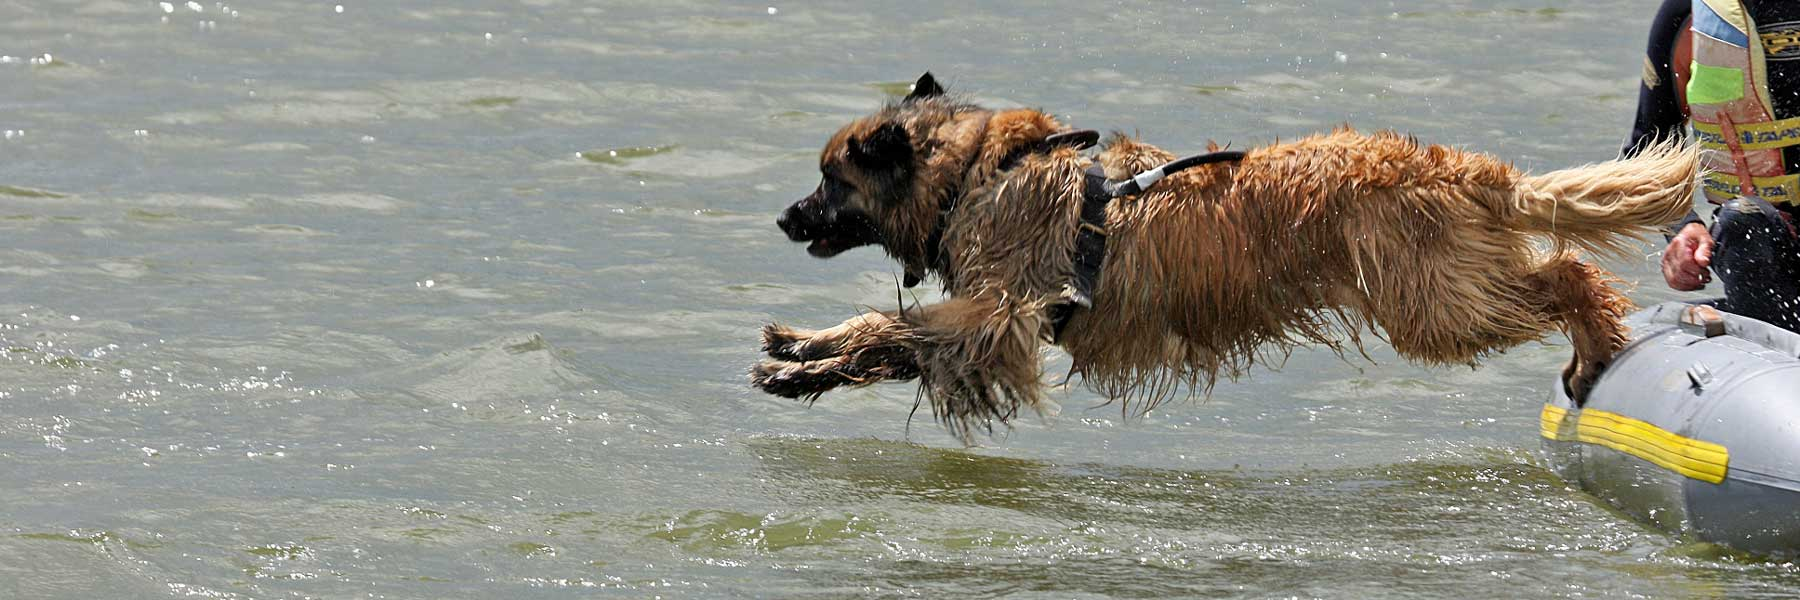 Leonberger umping from a boat